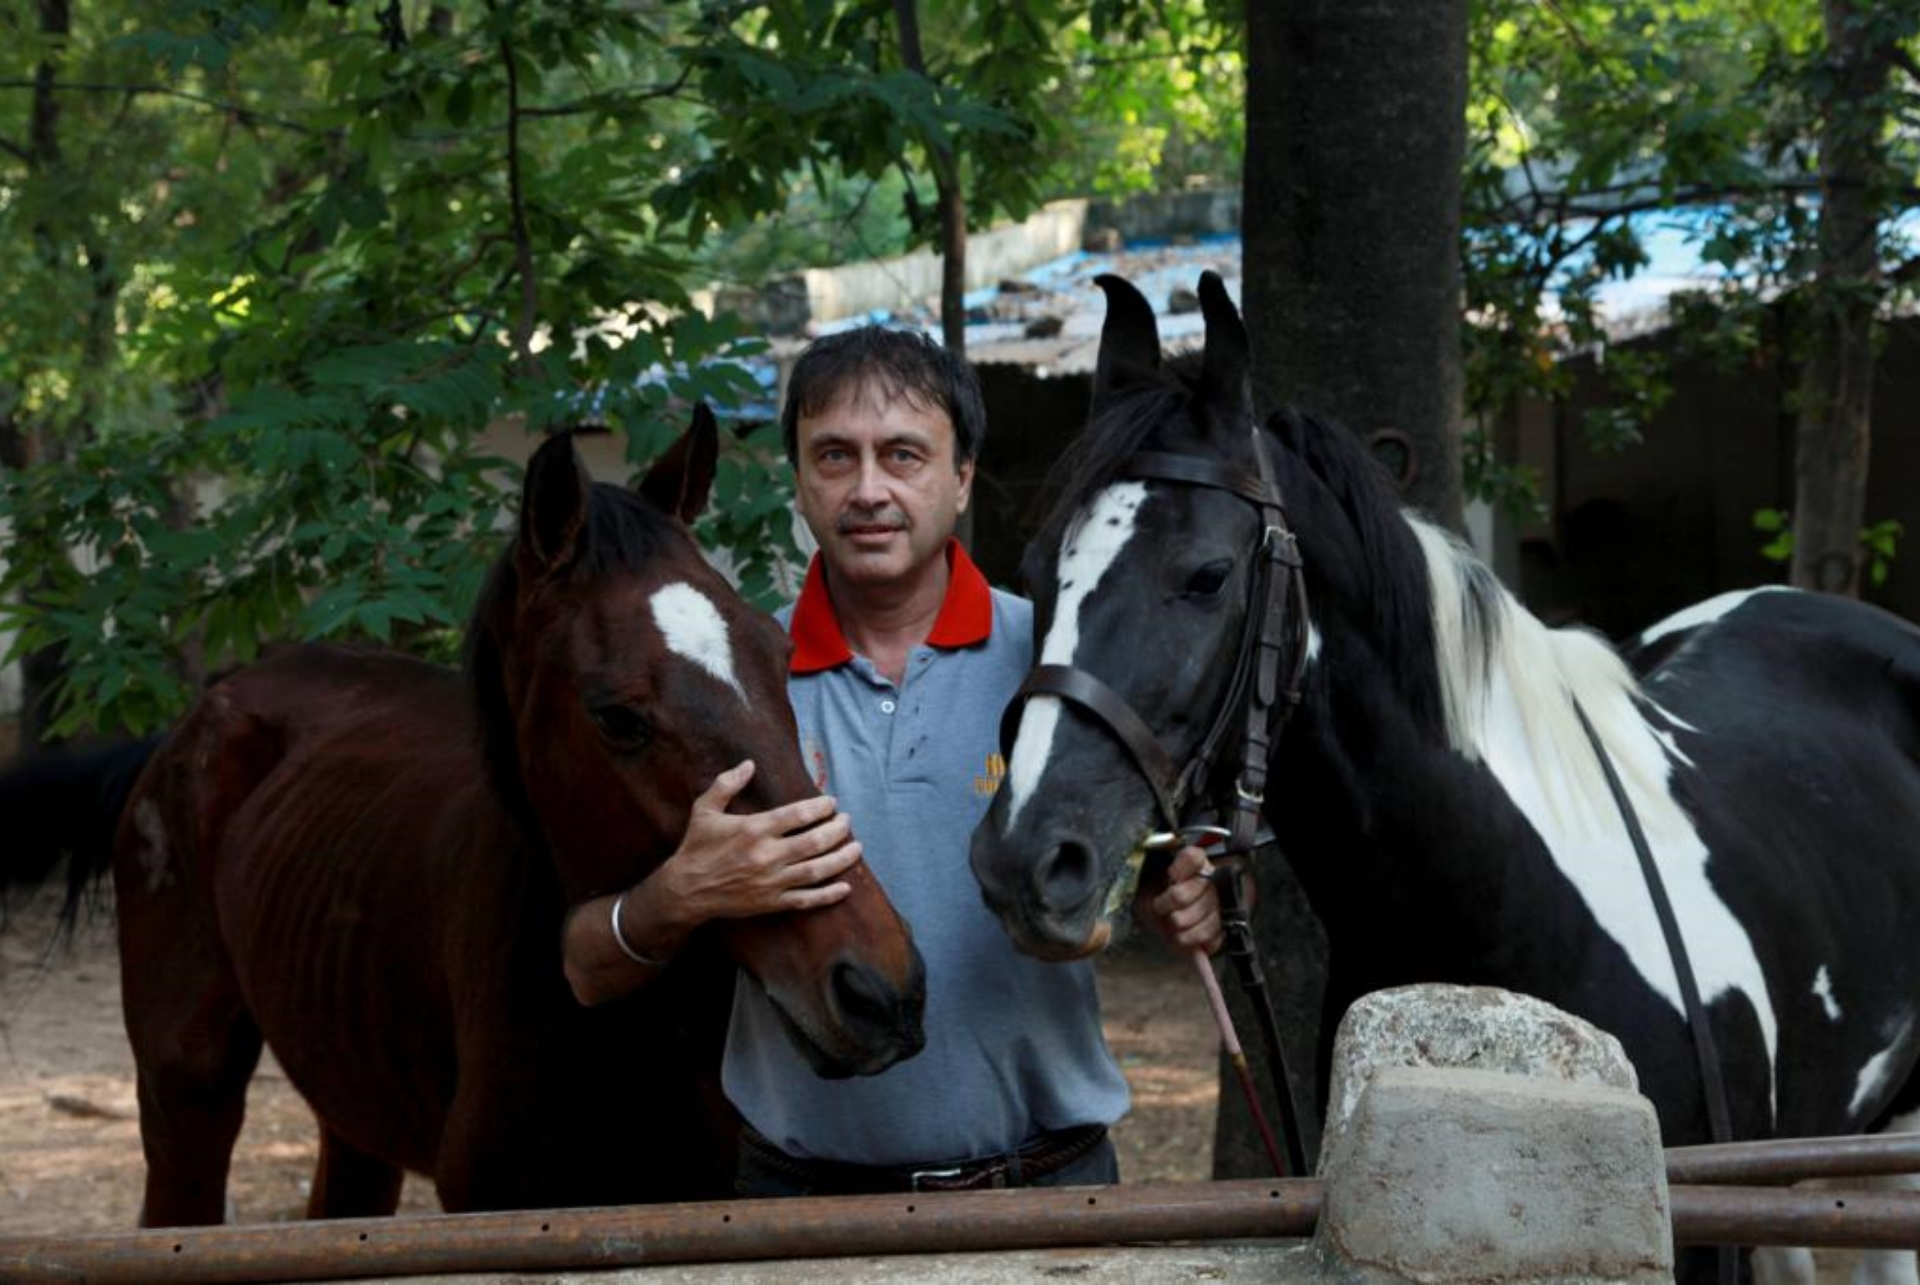 Siraj Attari, former polo player